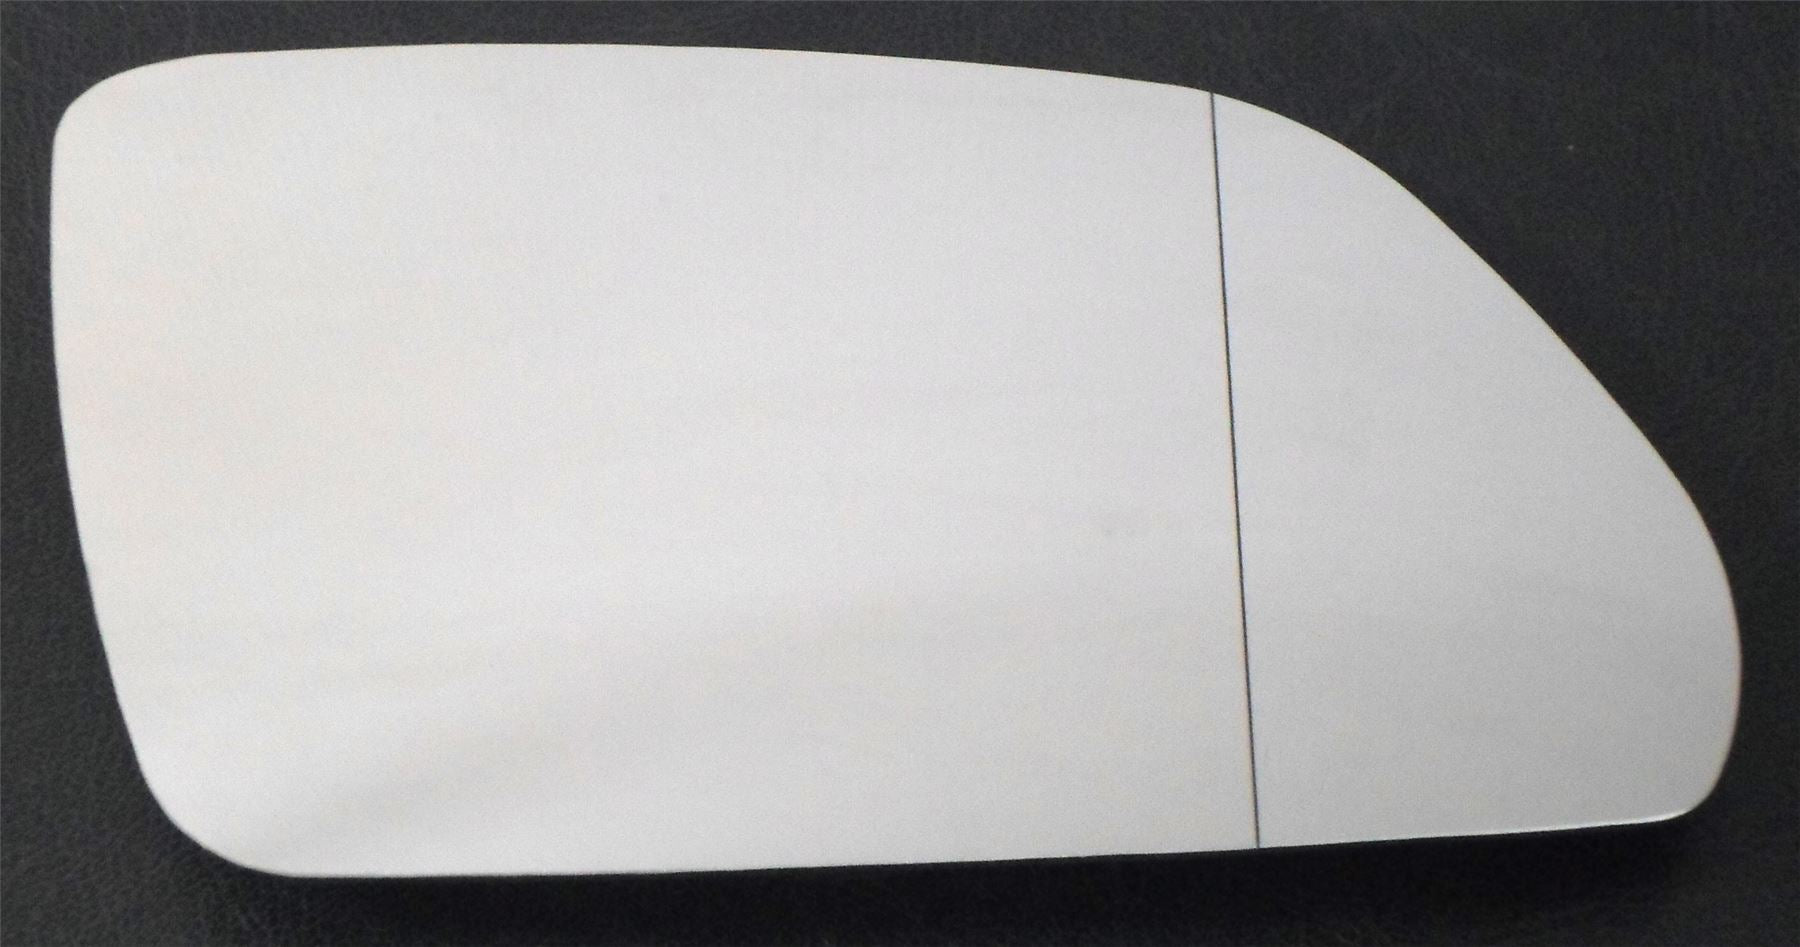 Volkswagen Polo Mk.4 7/2004-6/2009 Non-Heated Aspherical Mirror Glass Drivers Side O/S